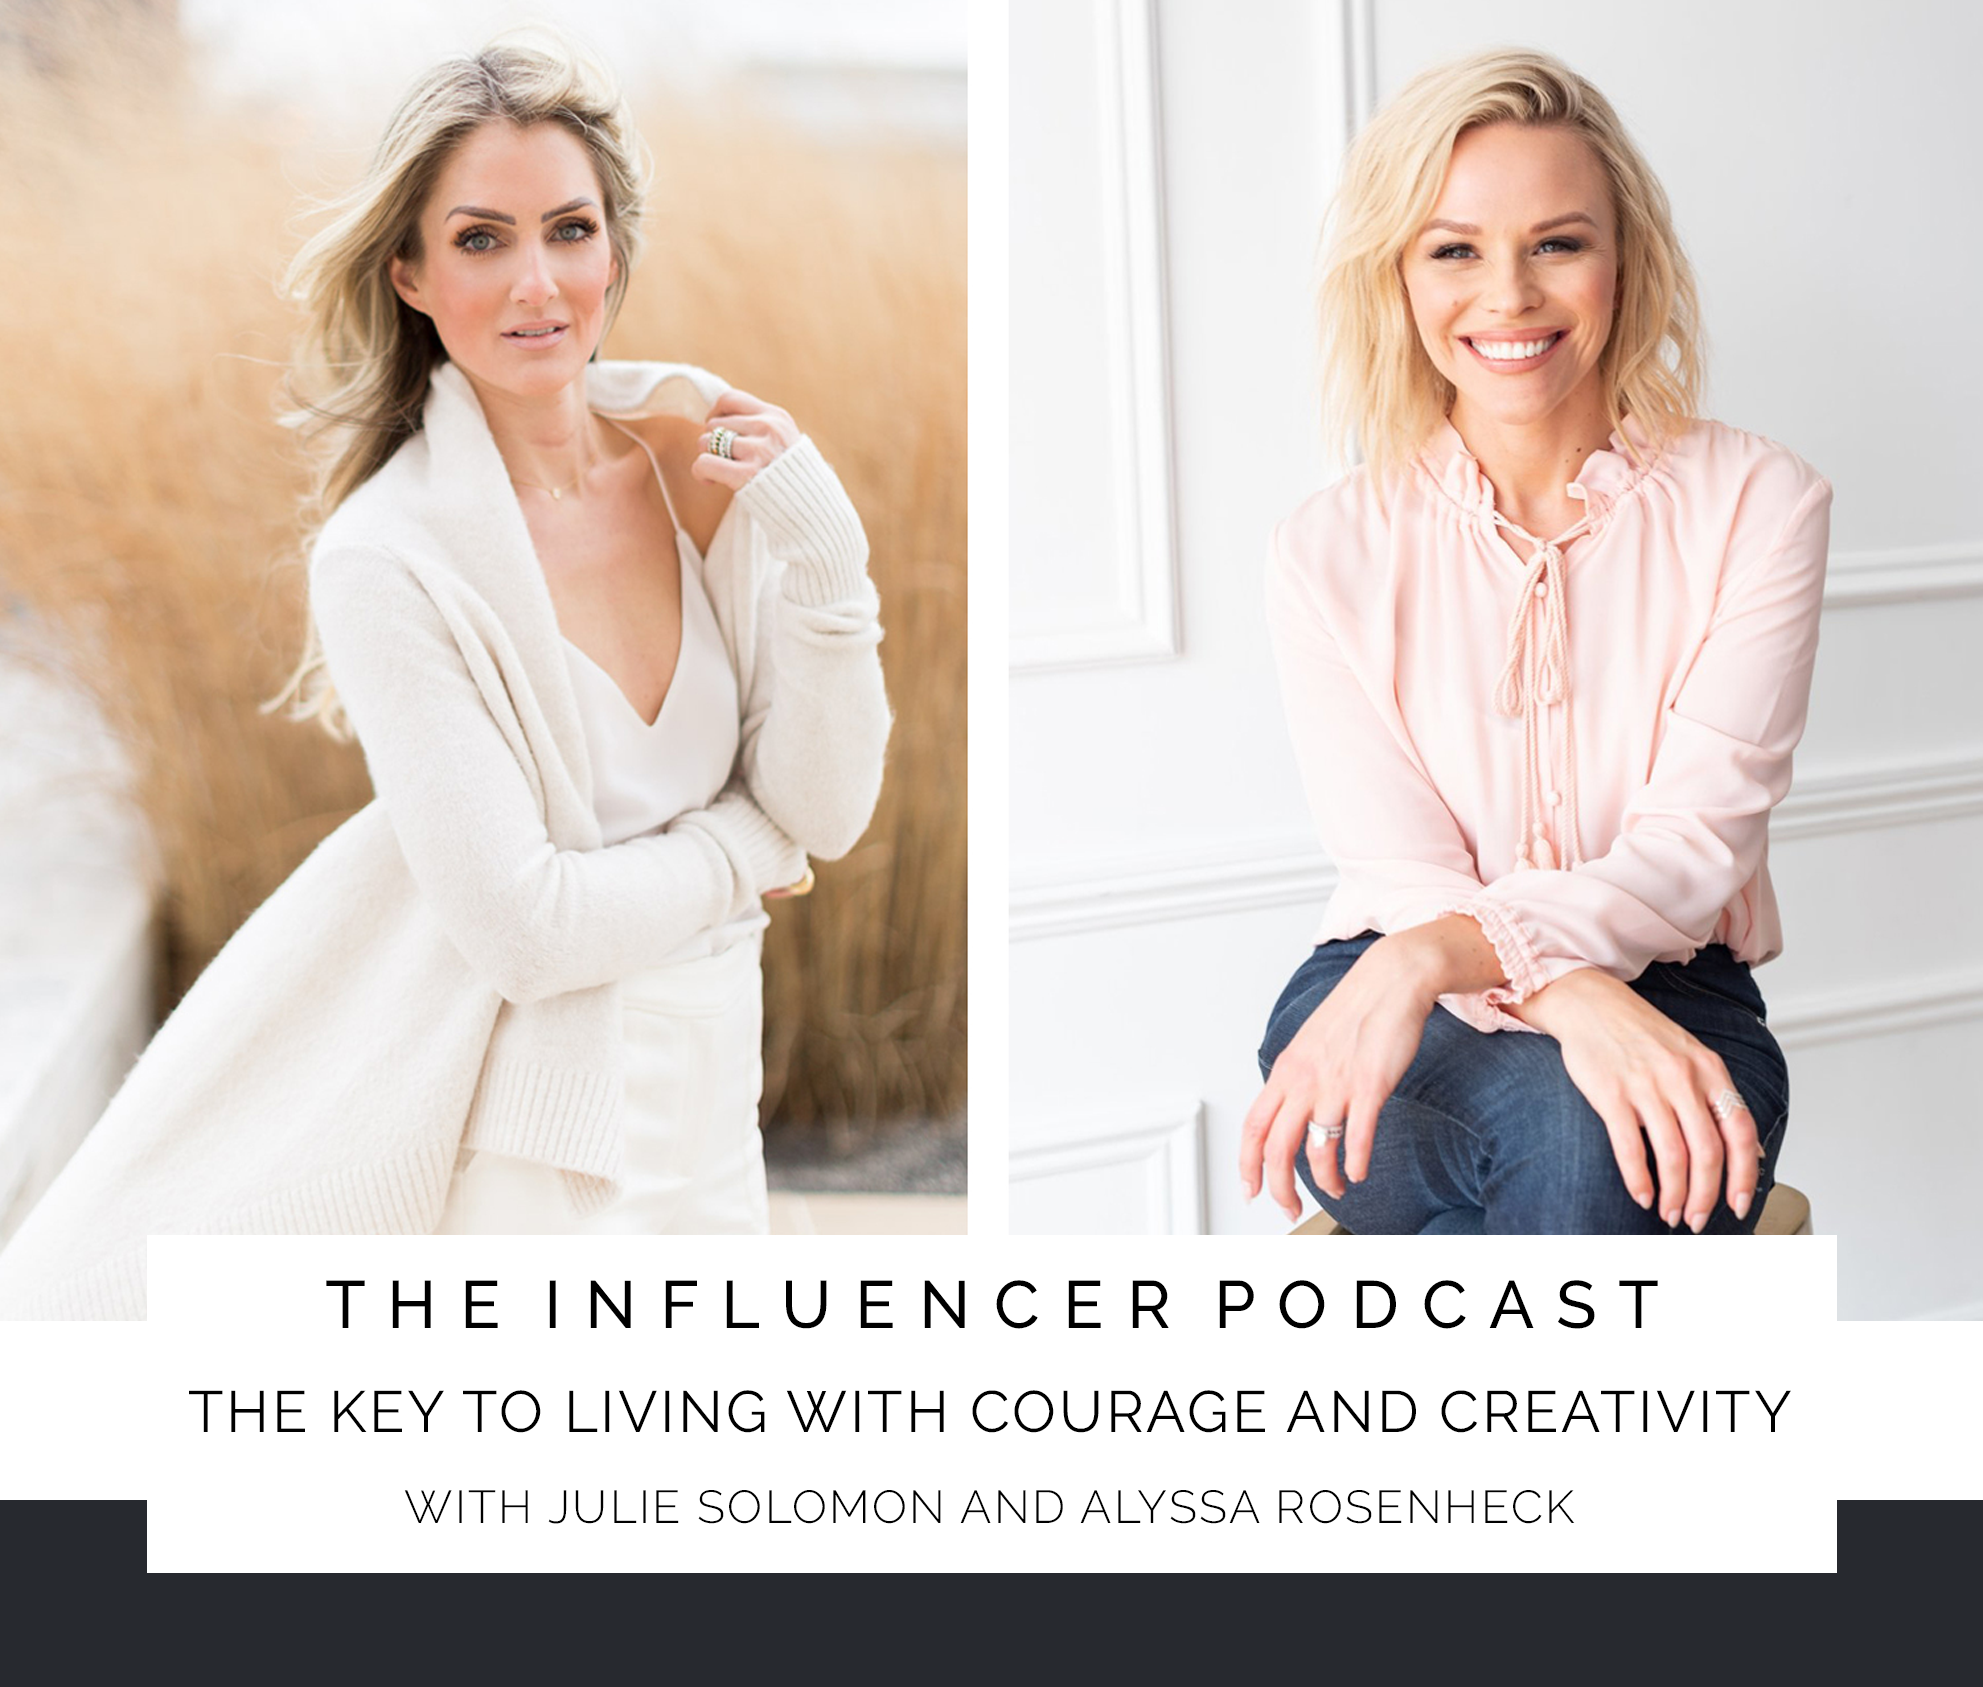 Alyssa Rosenheck and The New Southern with Julie Solomon's The Influencer podcast - Creativity Courage Cancer Survivor - nashville tn